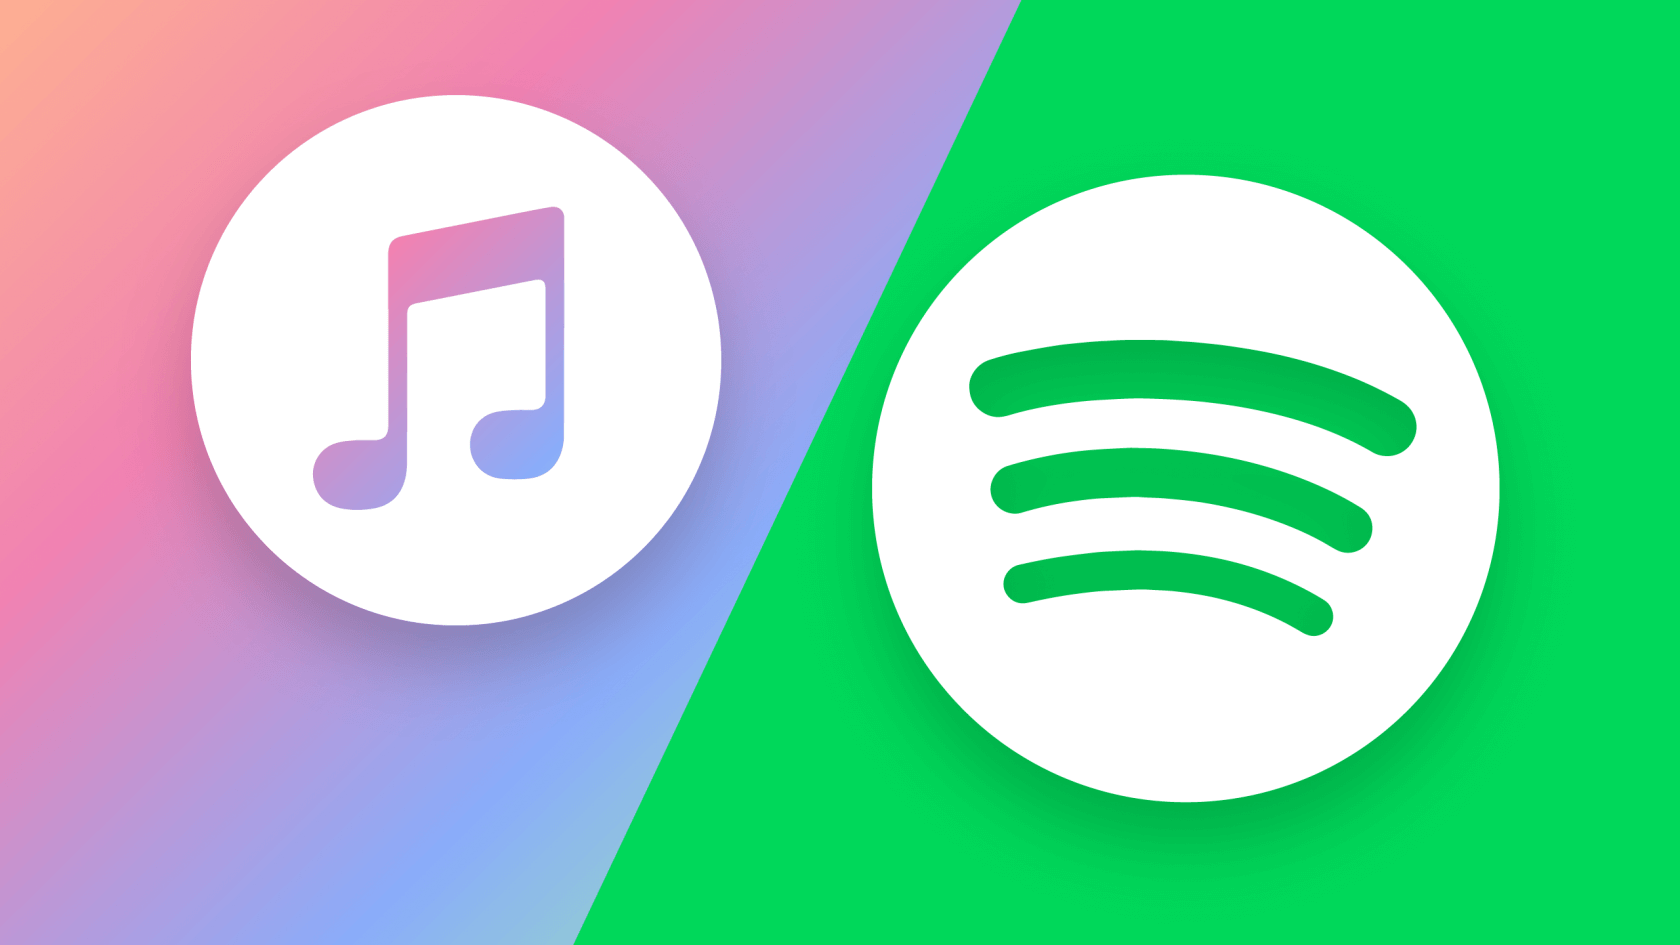 Tim Cook thinks Spotify is 'draining the humanity out of music'